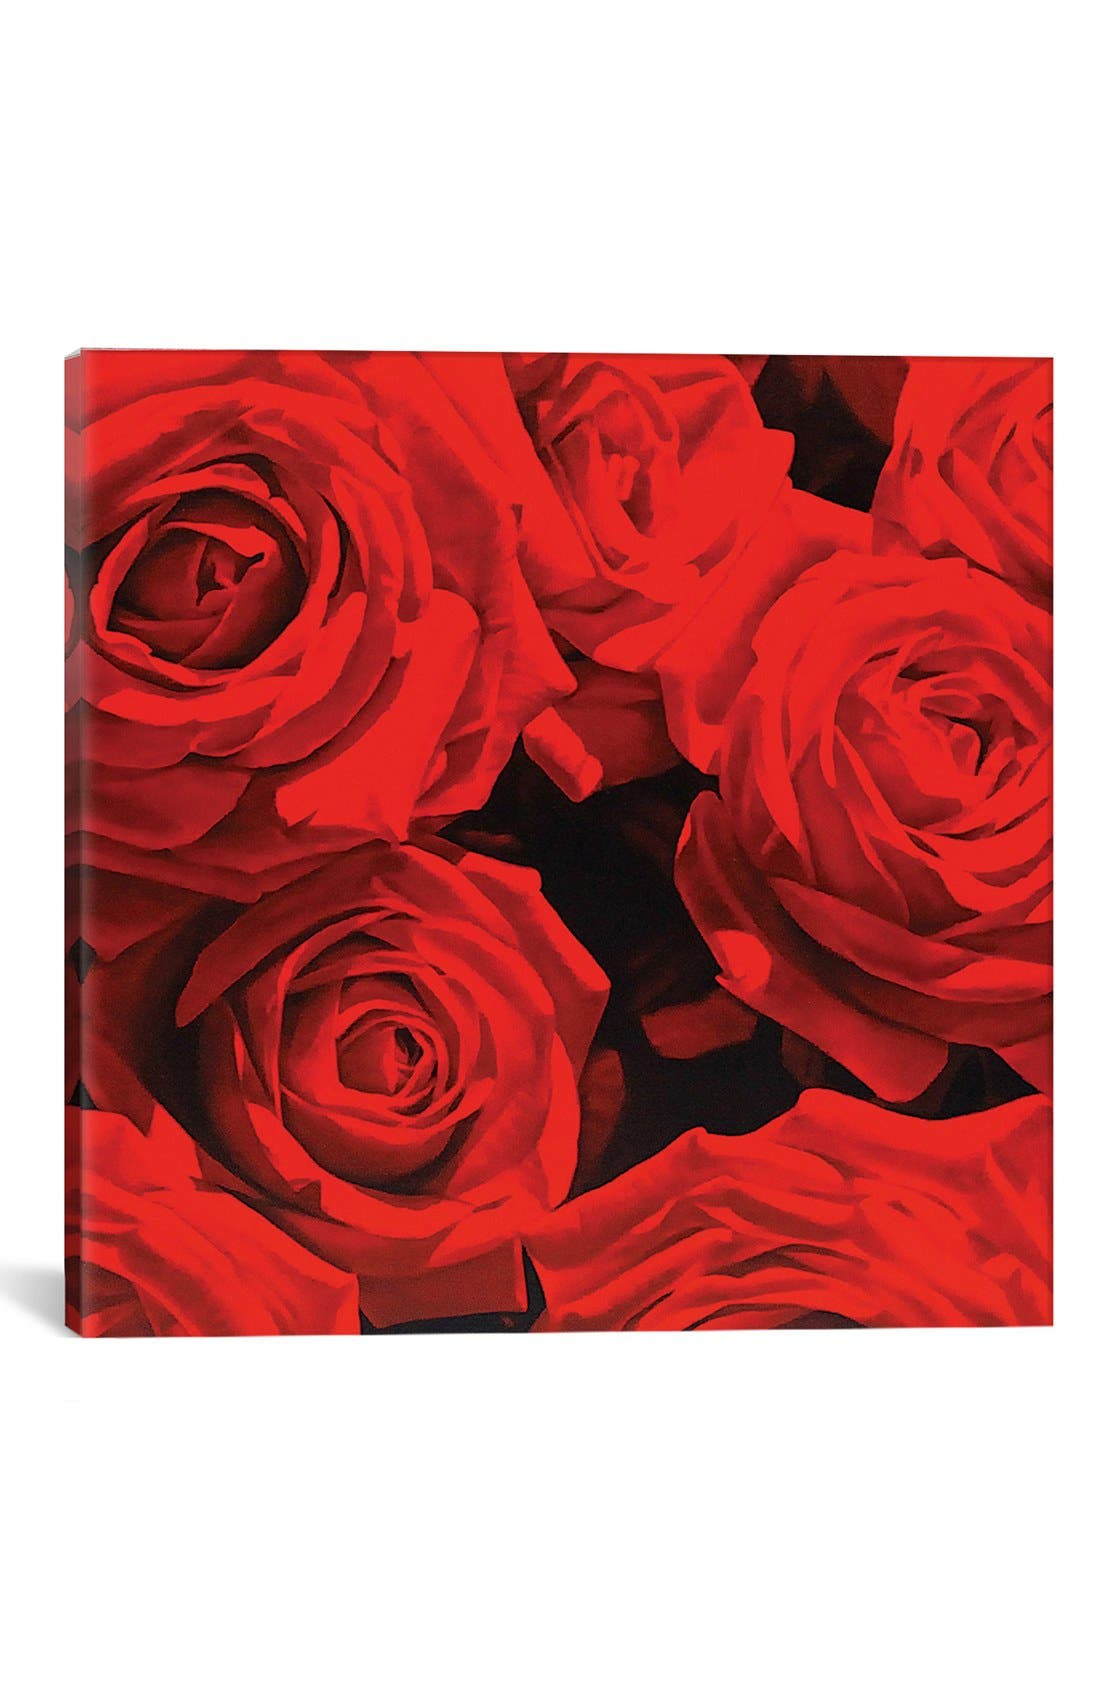 Alternate Image 1 Selected - iCanvas 'Red Roses' Giclée Print Canvas Art